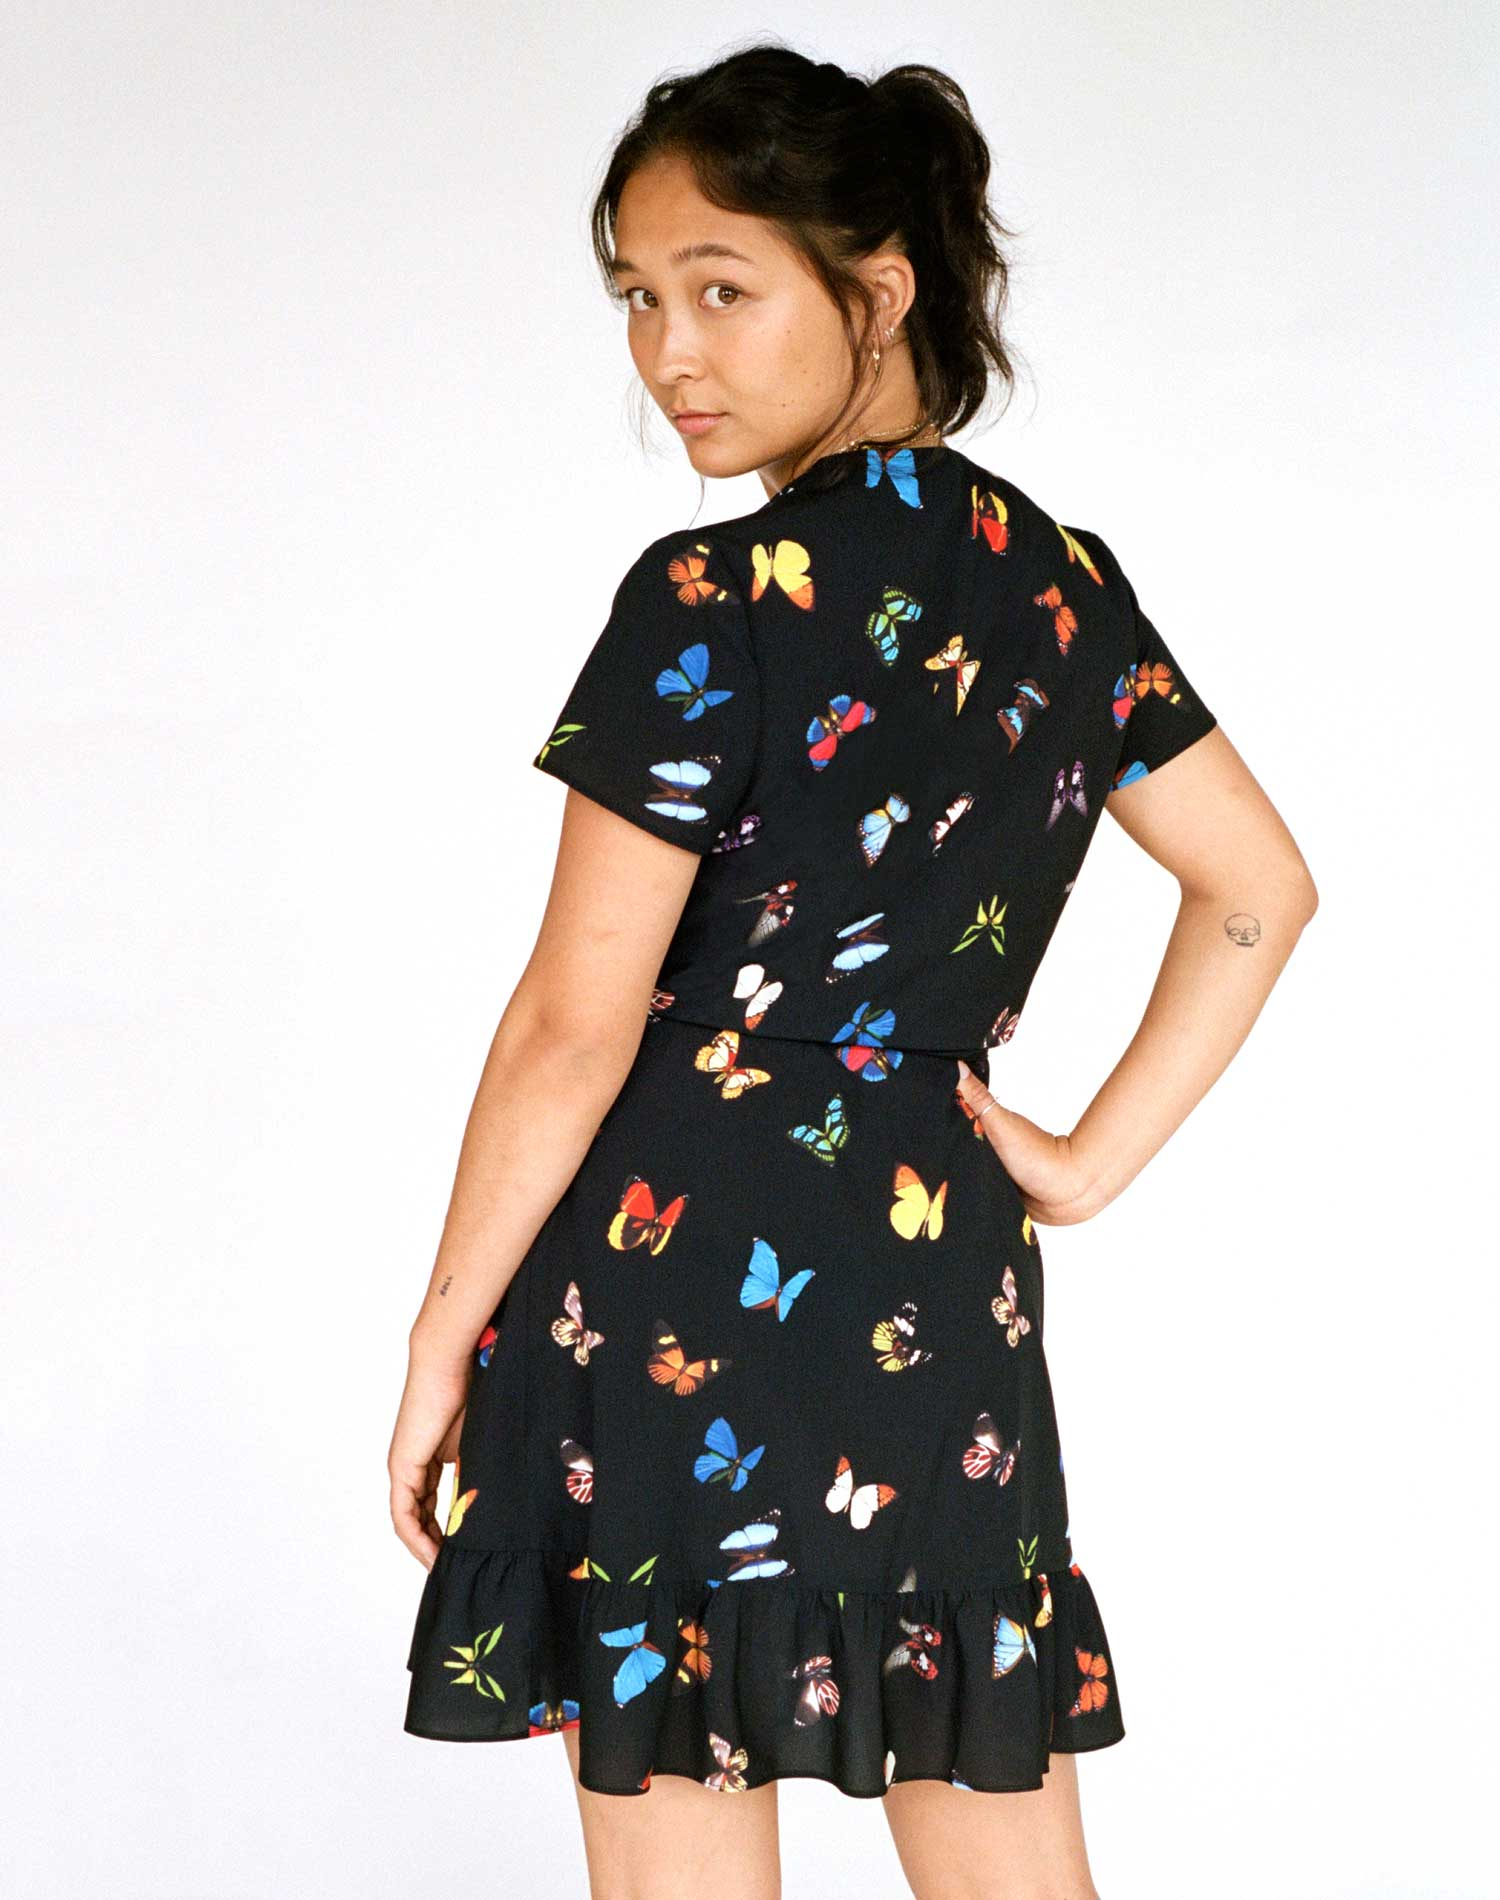 The Gaia Butterfly Wrap Dress